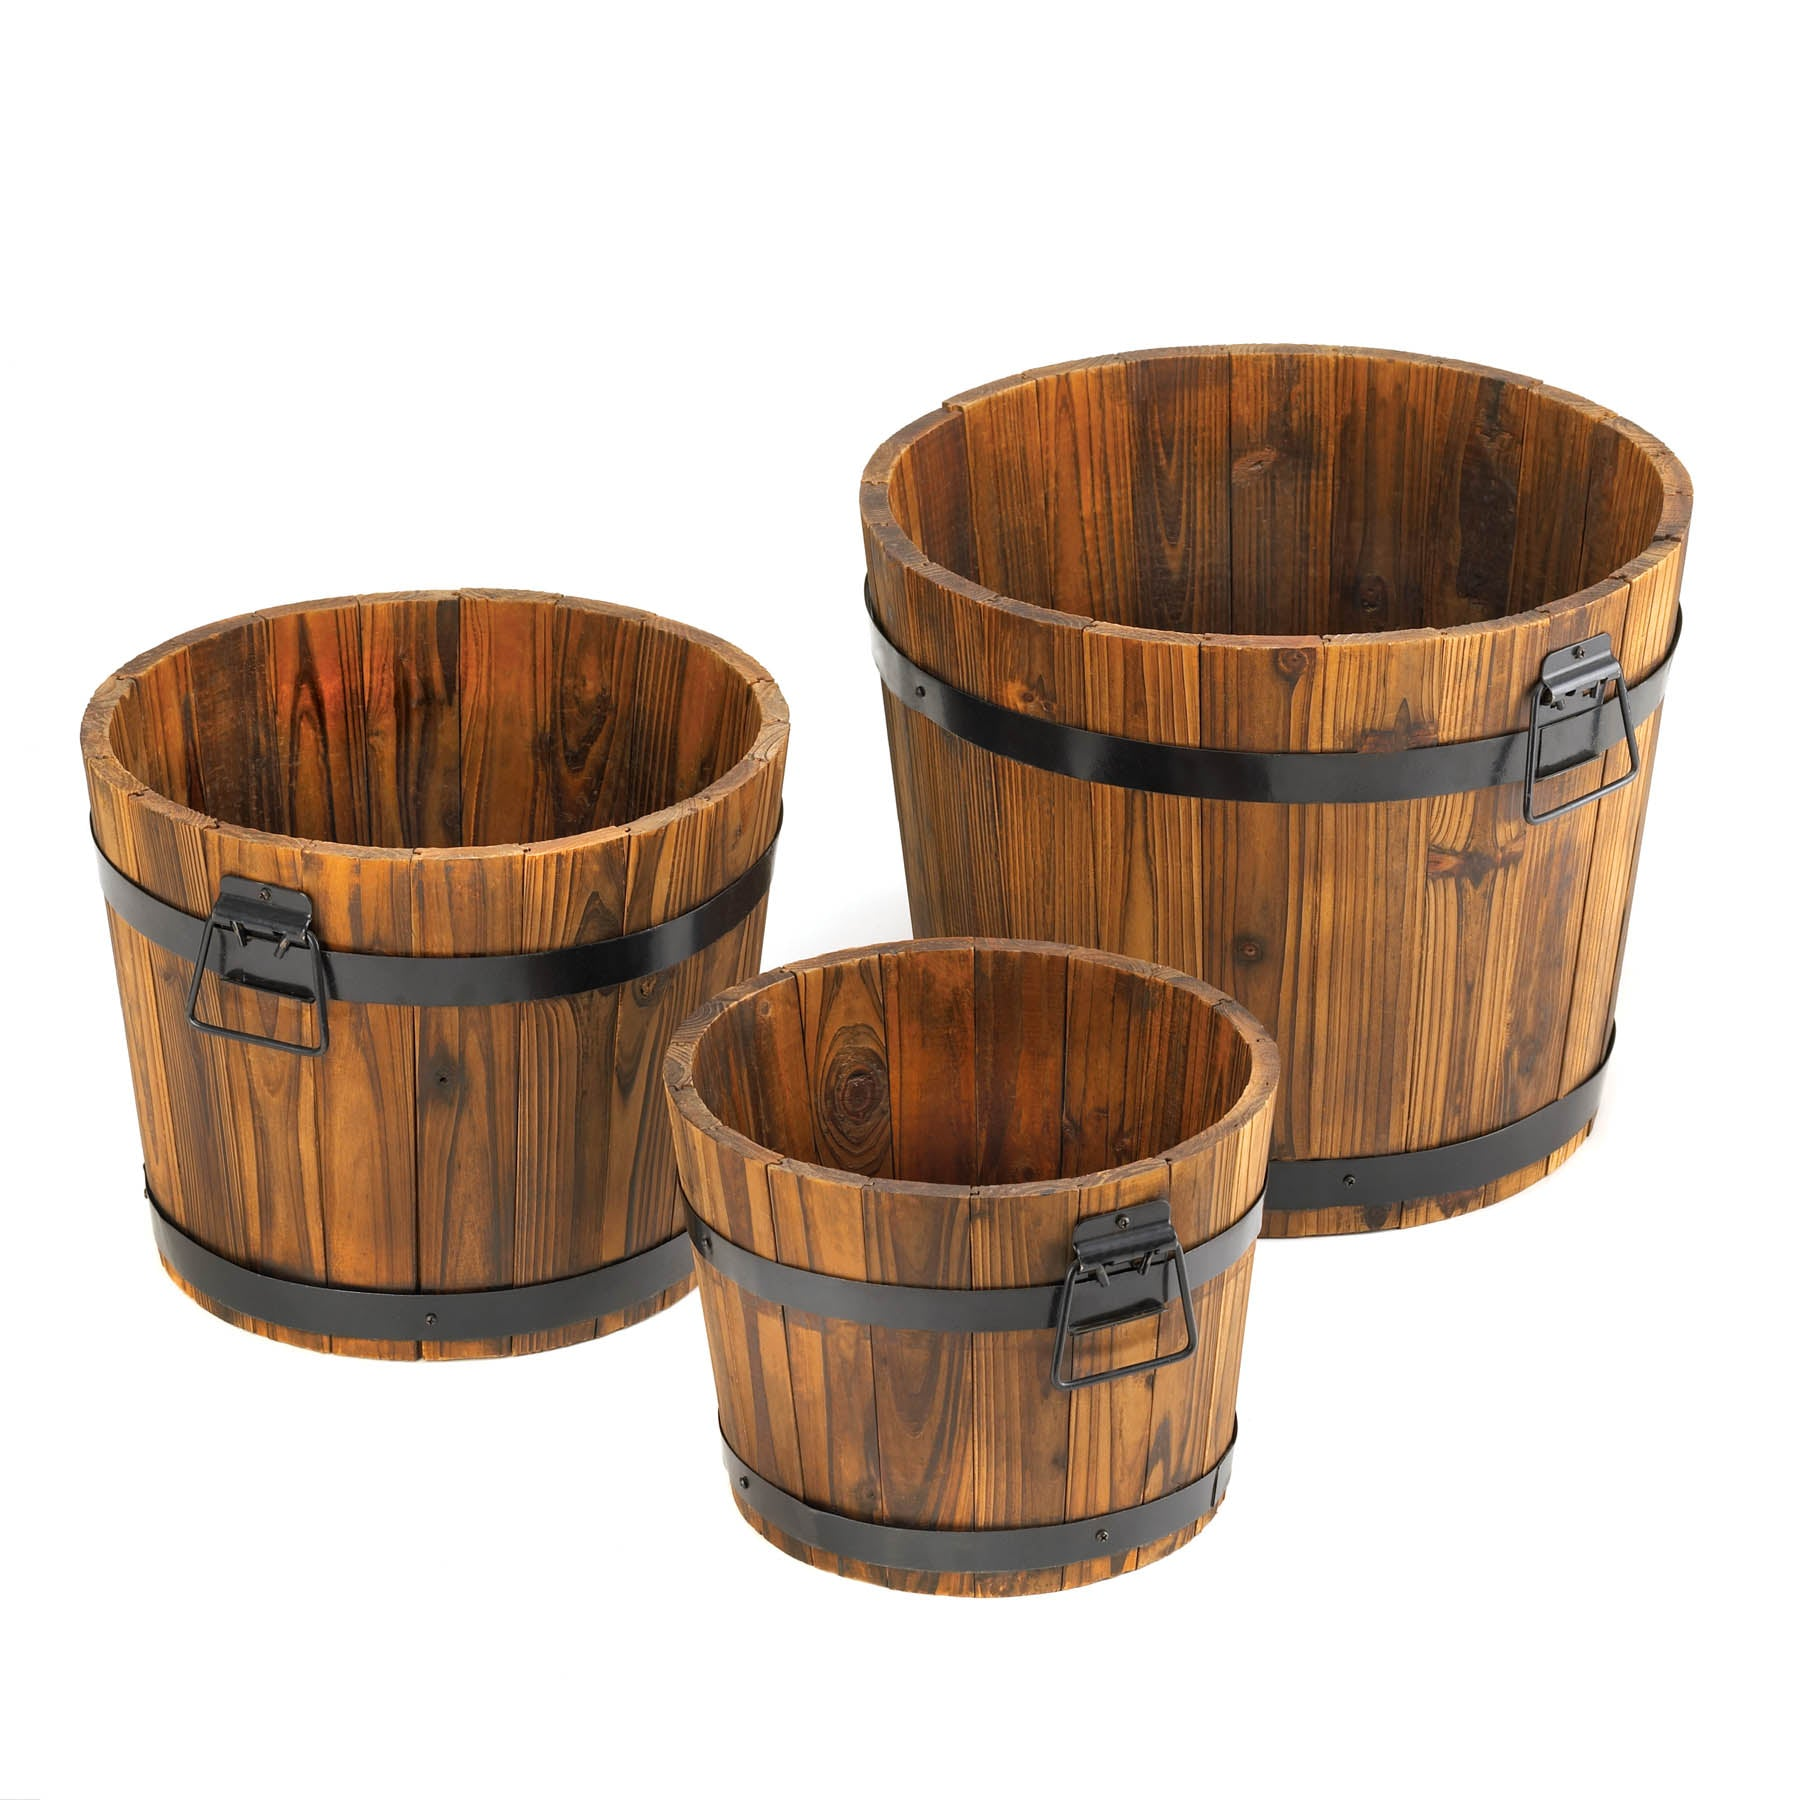 Summerfield Terrace Apple Barrel Planter Trio - 15114